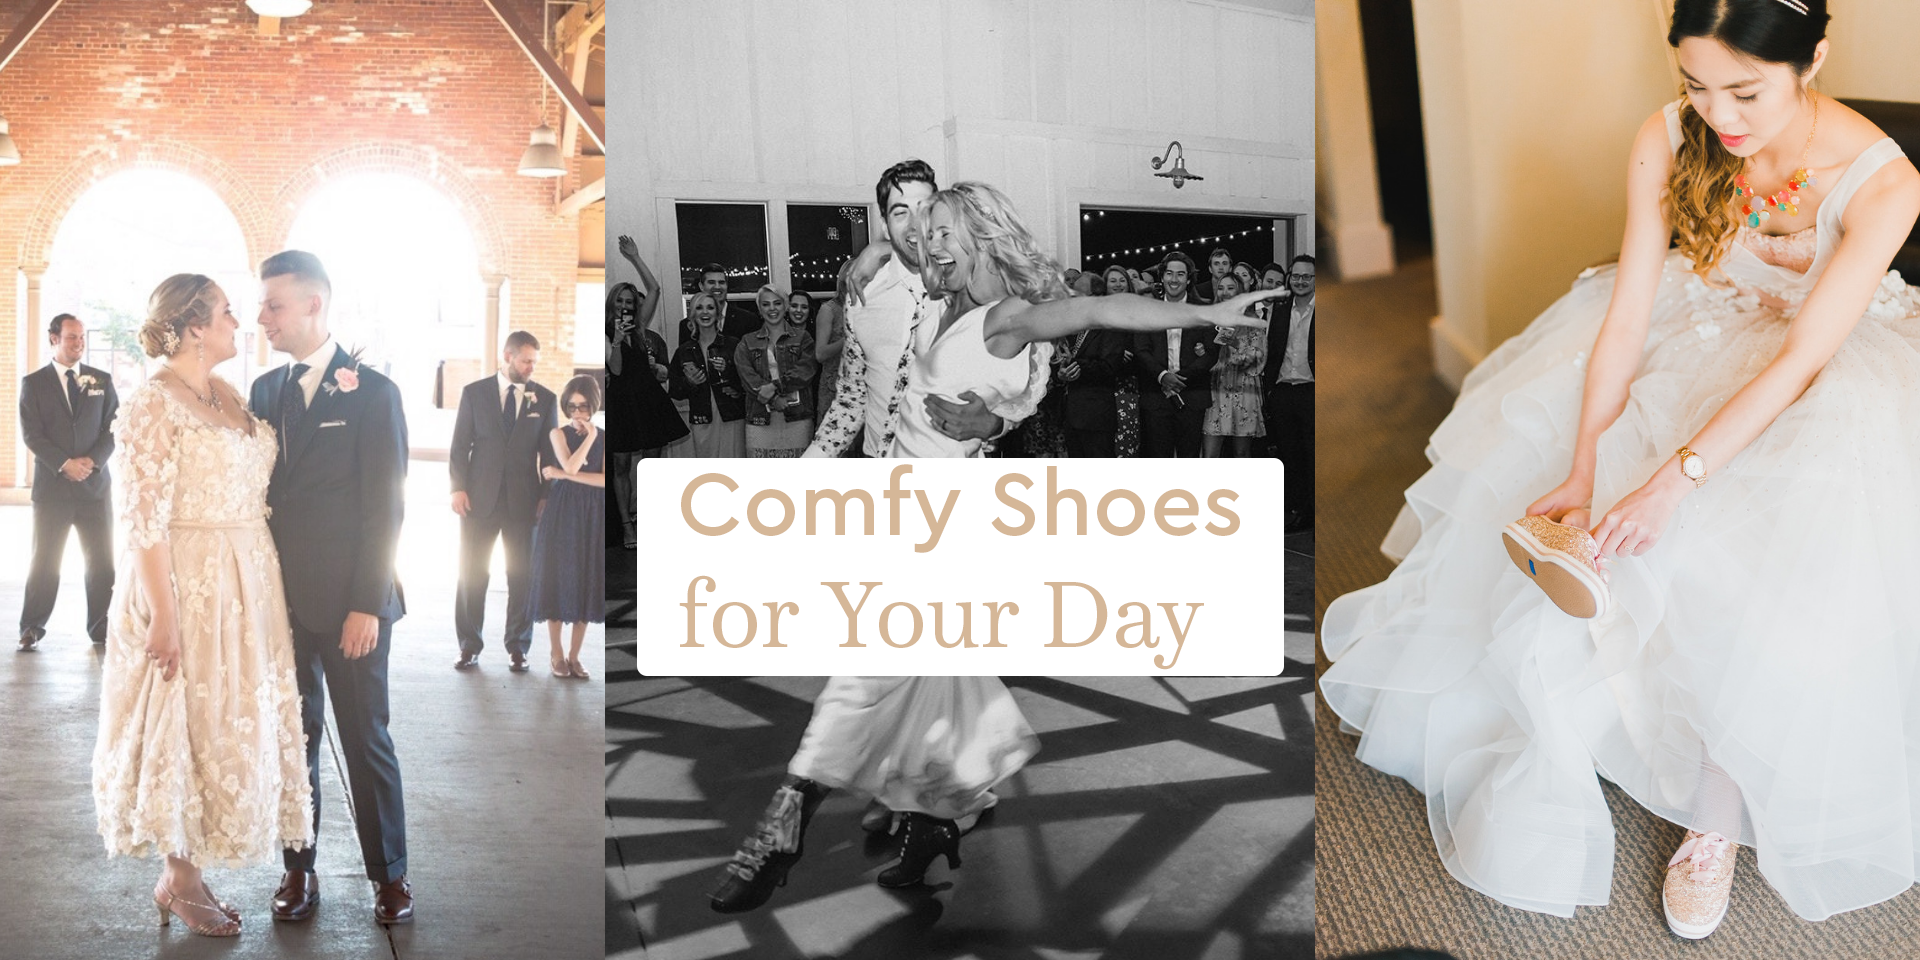 Brides wearing comfy shoes: kitten heels, boots and sparkly sneakers!